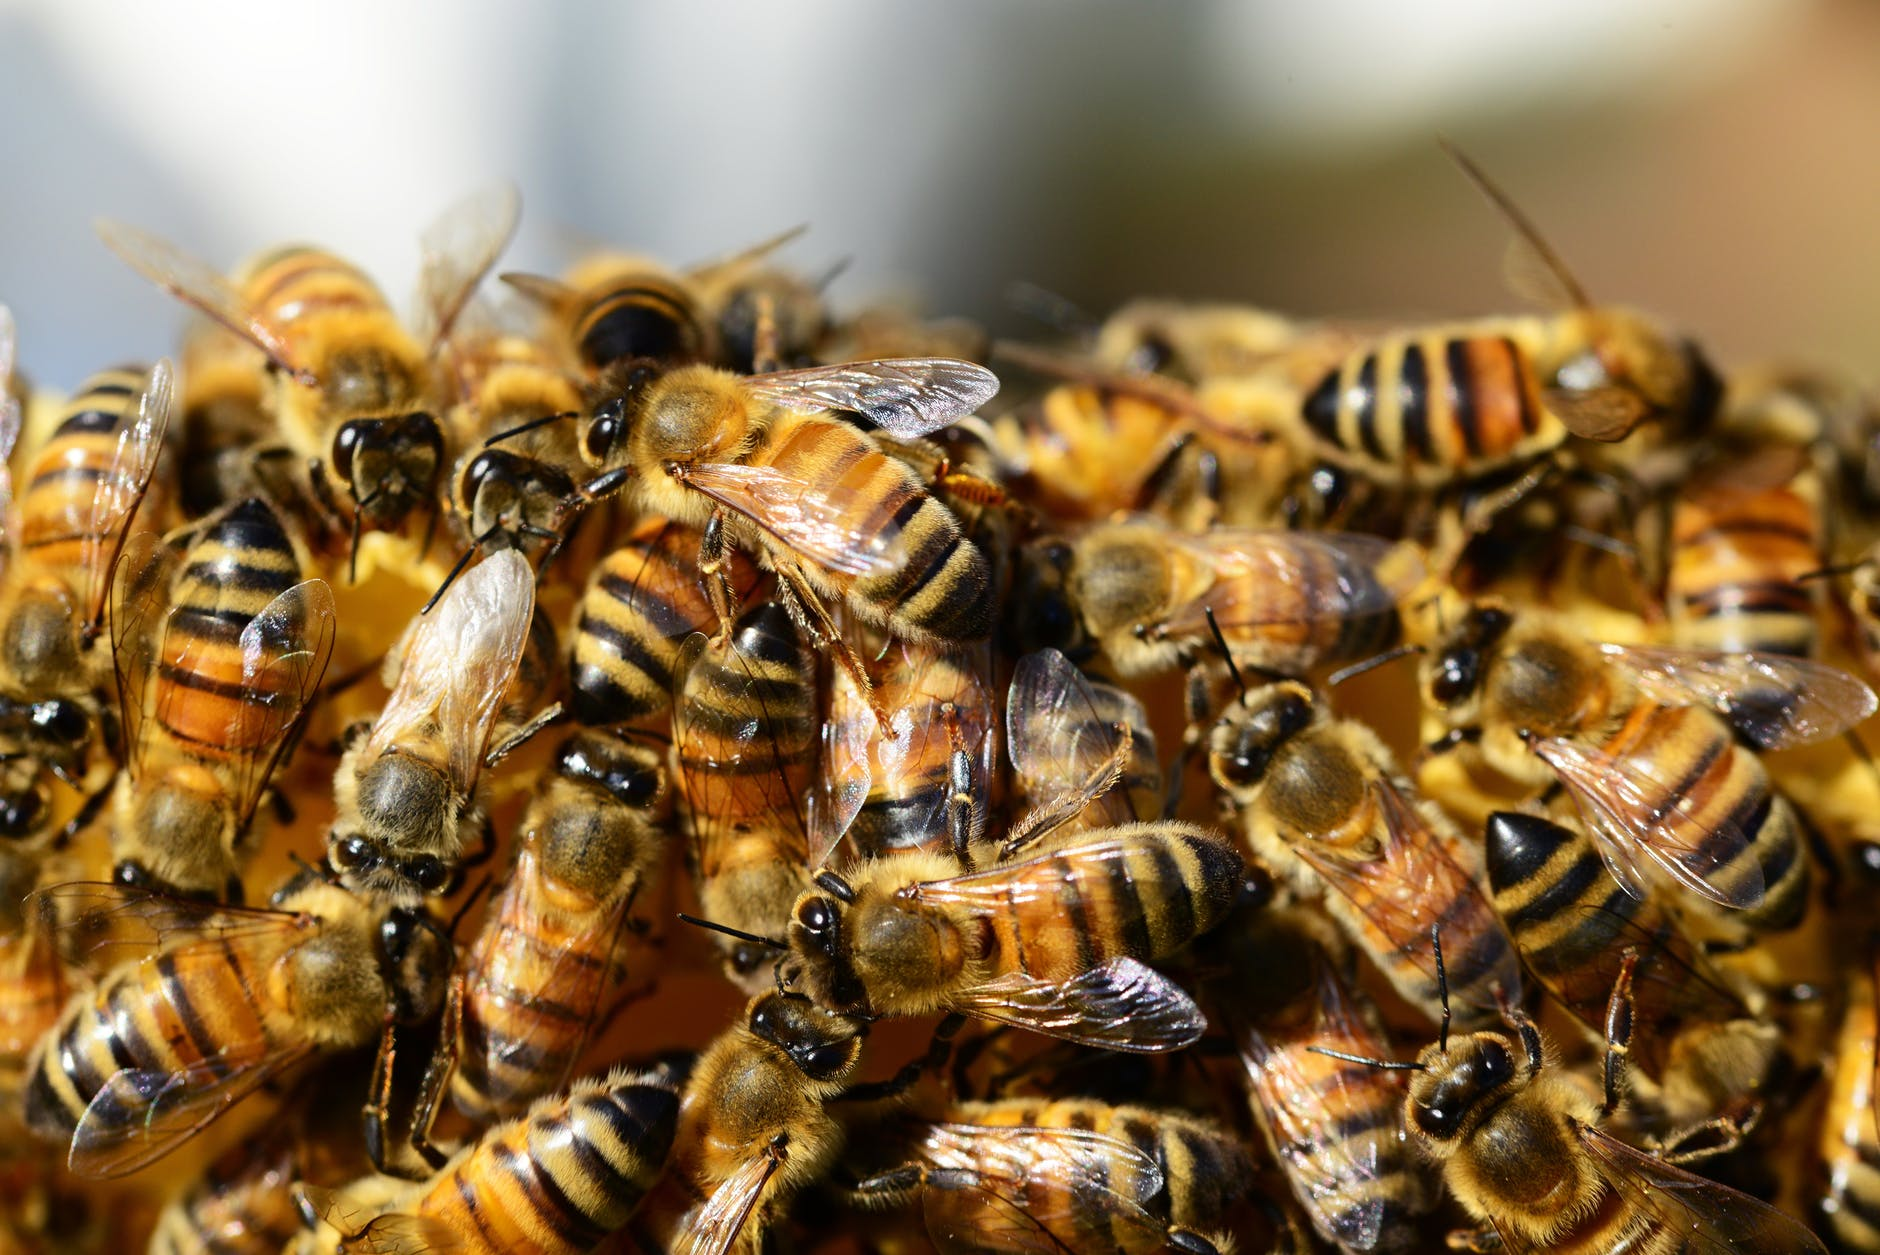 A Corona of Bees, blog post by Aspasia S. Bissas